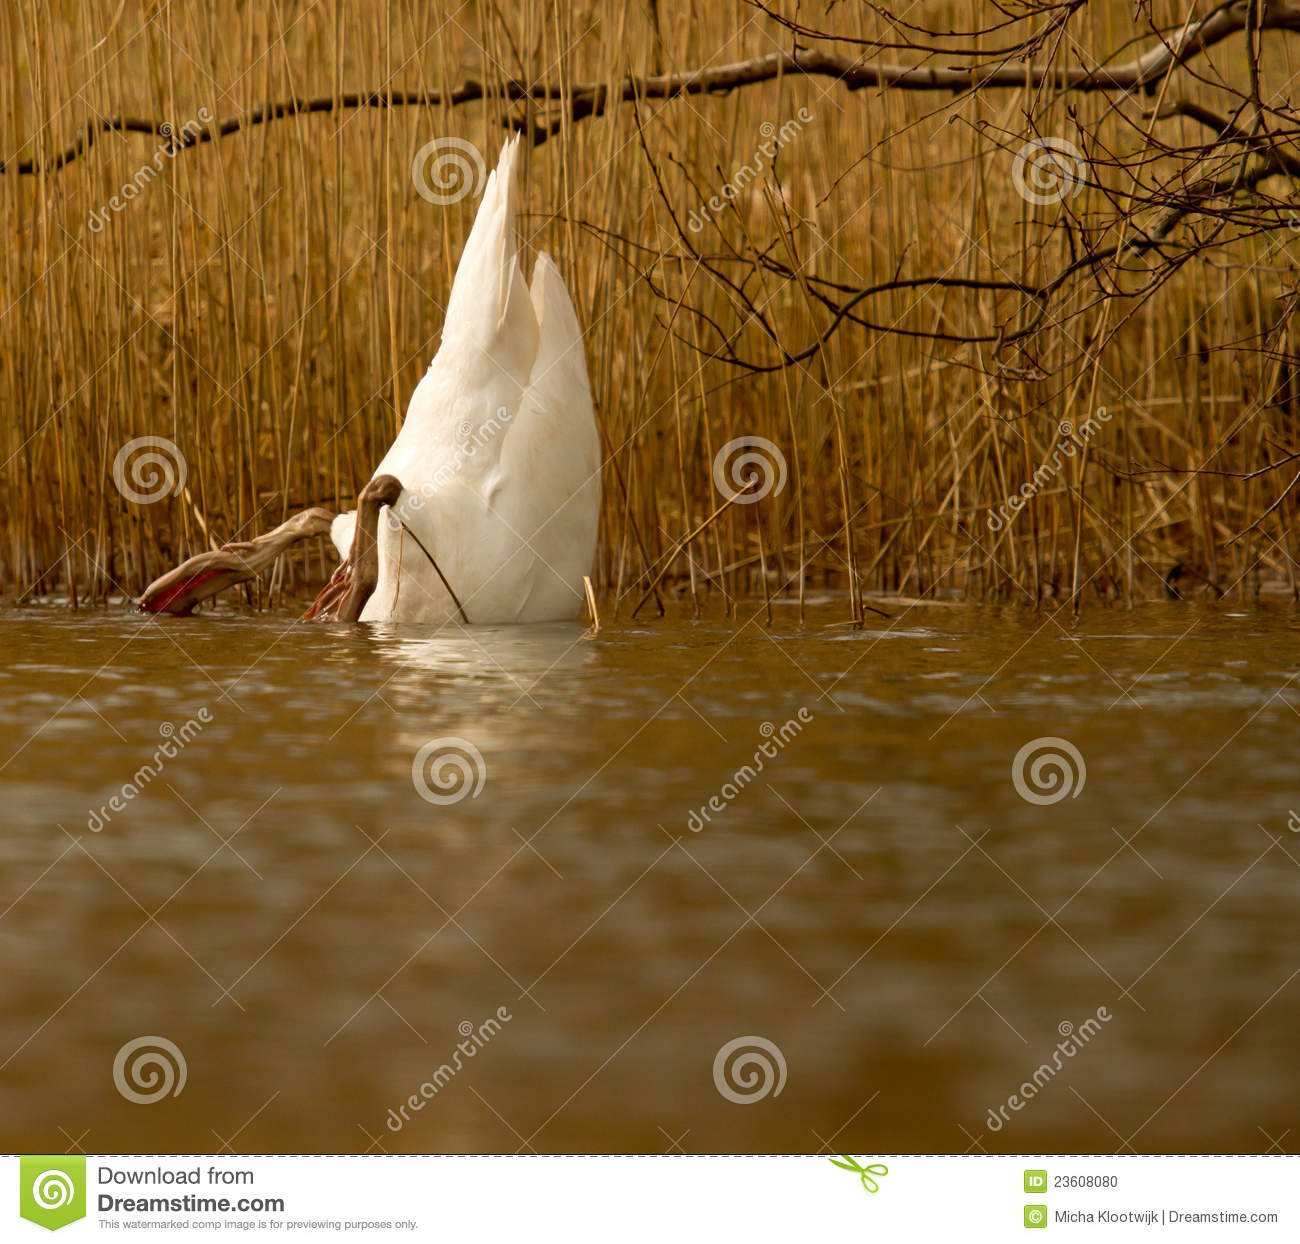 A swan is eating